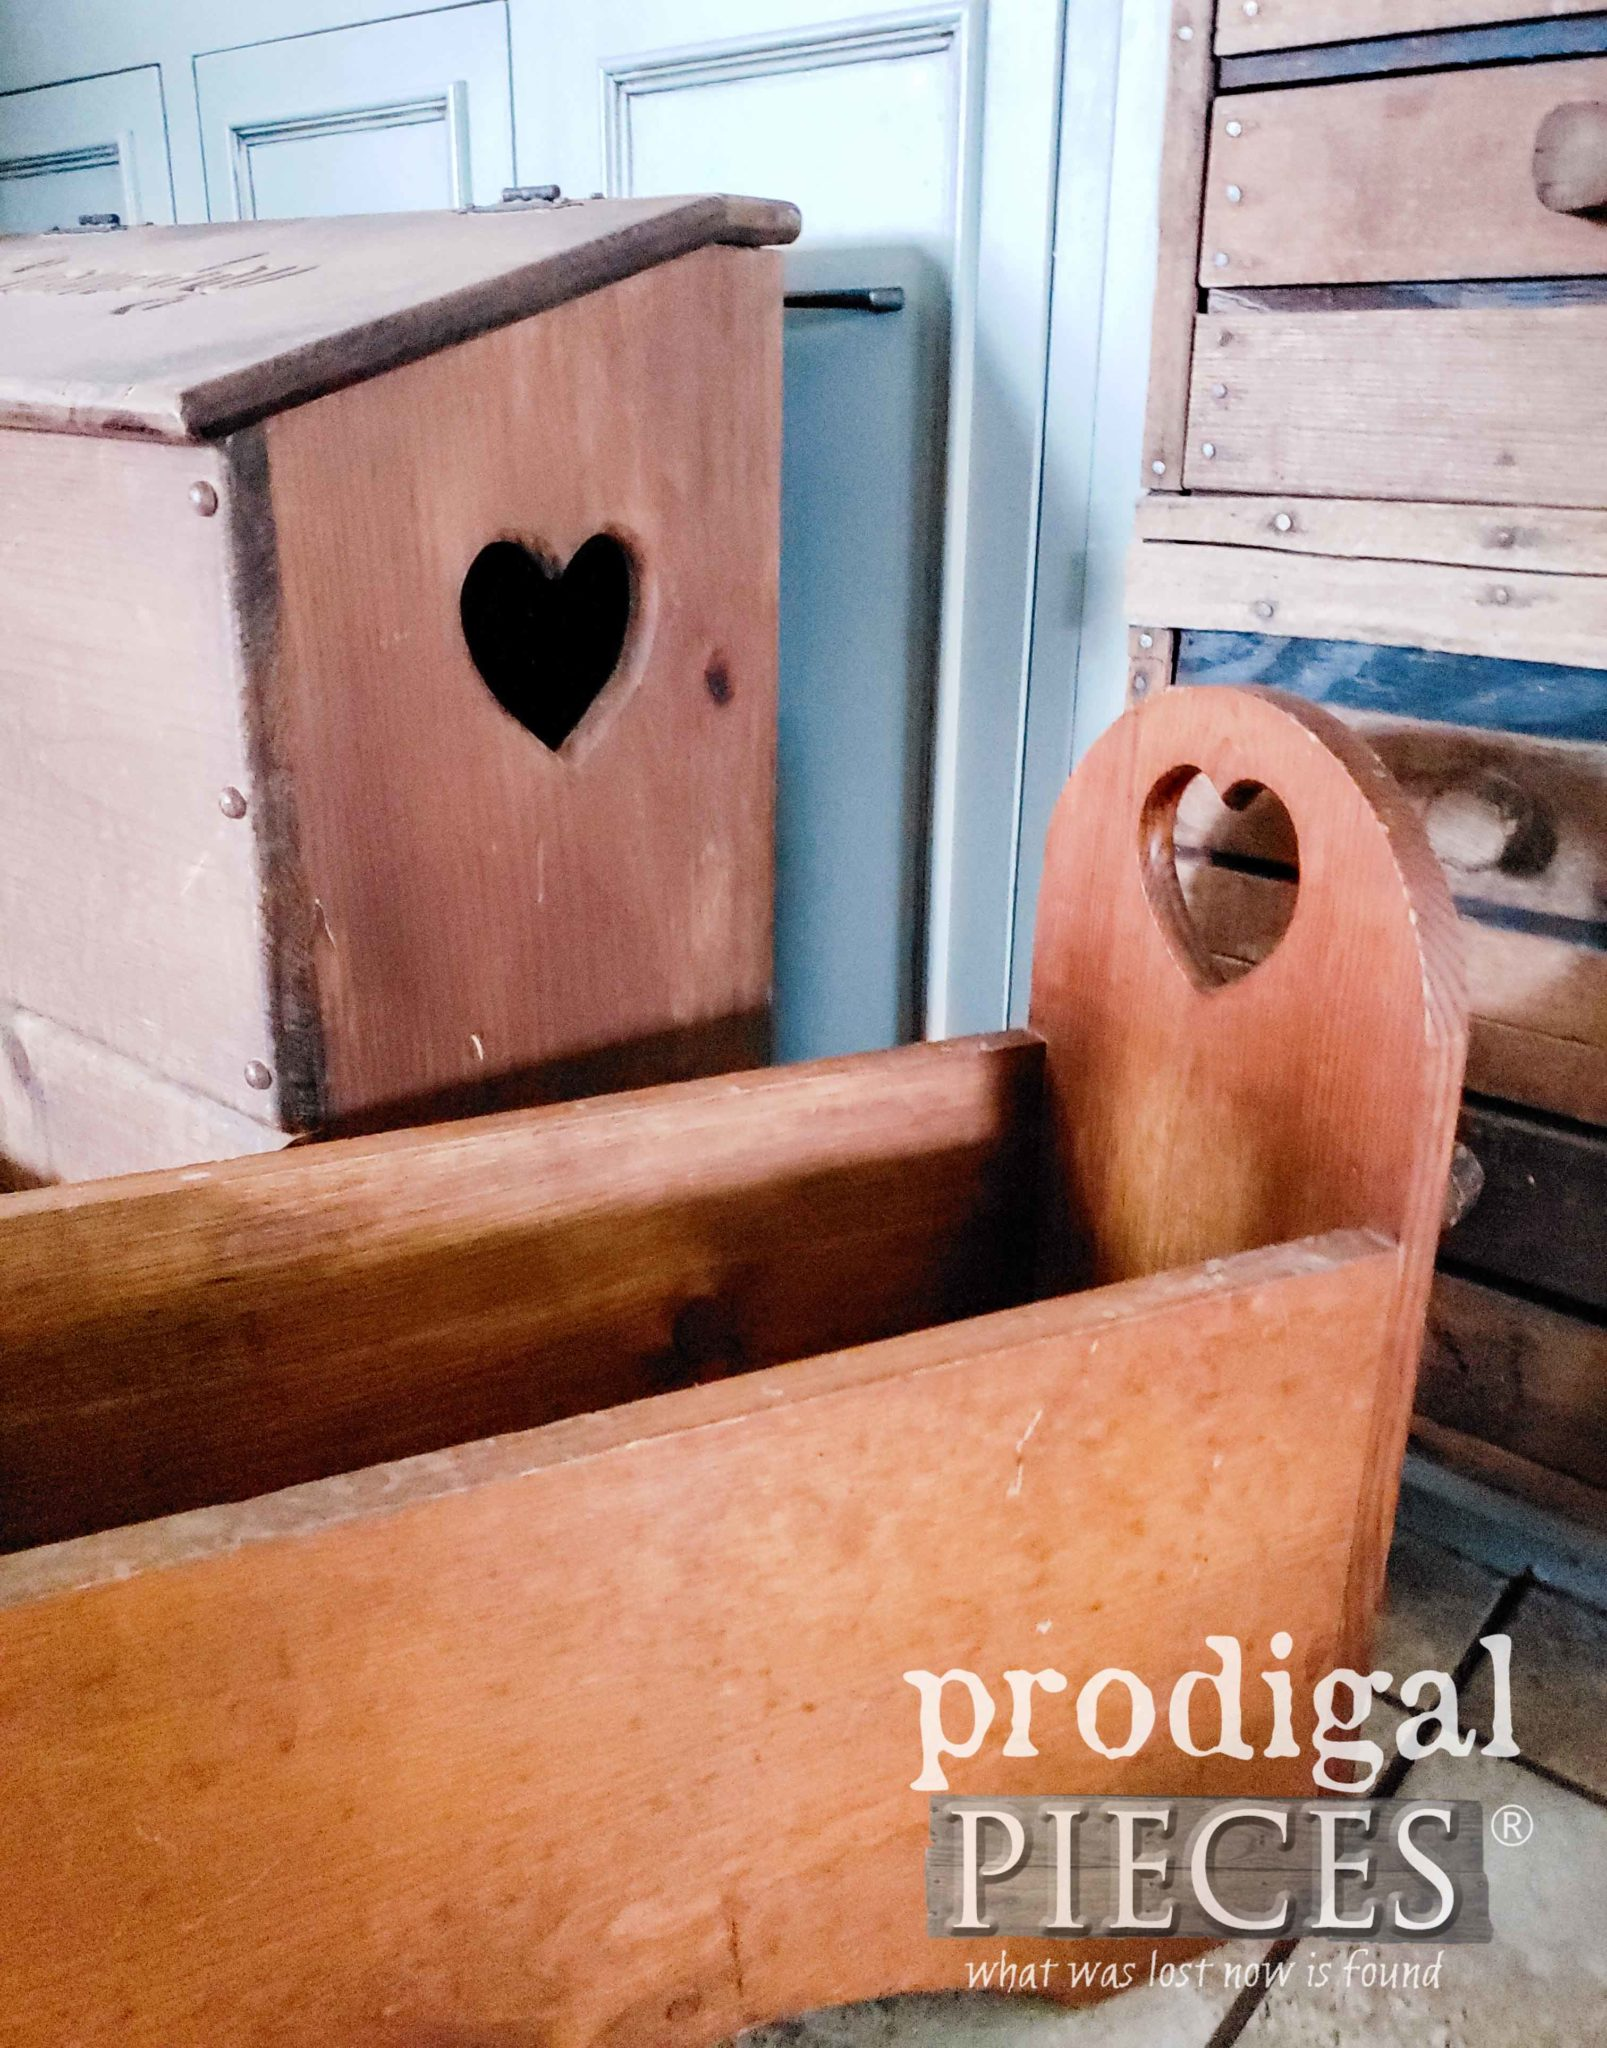 Totally Retro 80's Heart Cut-Out Bins | prodigalpieces.com